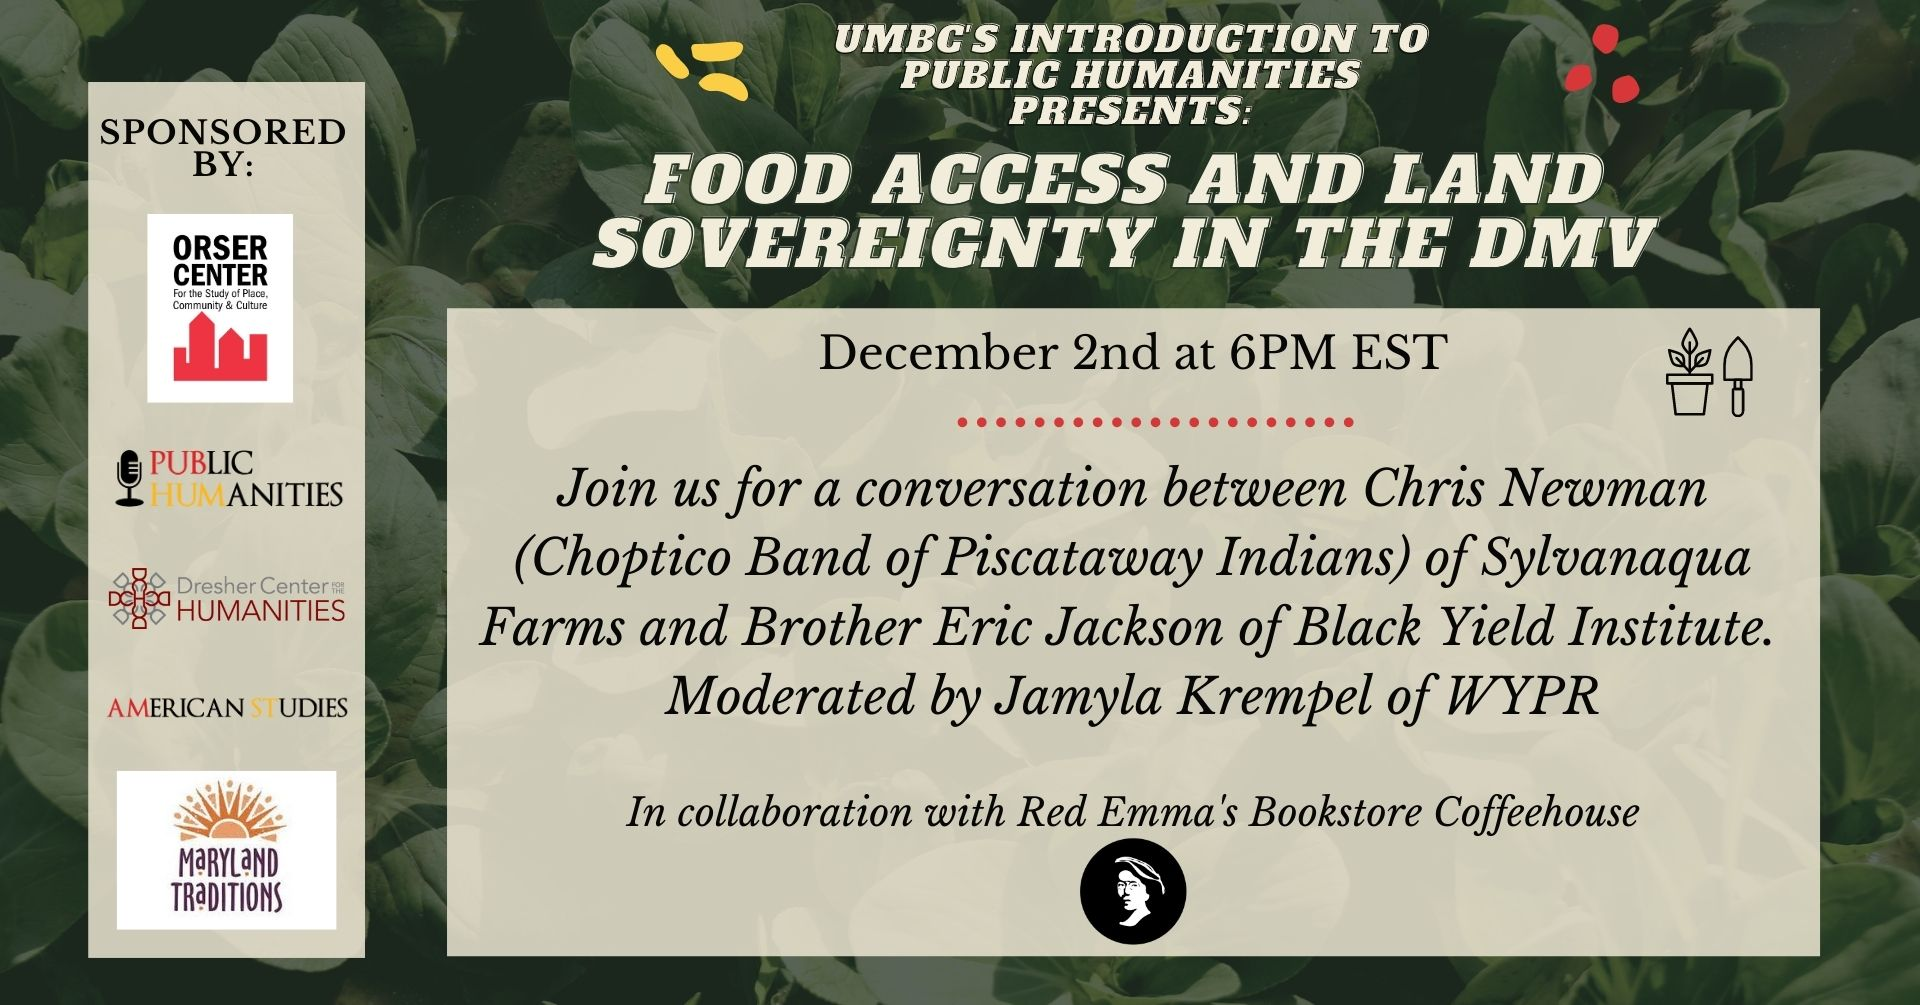 Food Access and Land Sovereignty in the DMV